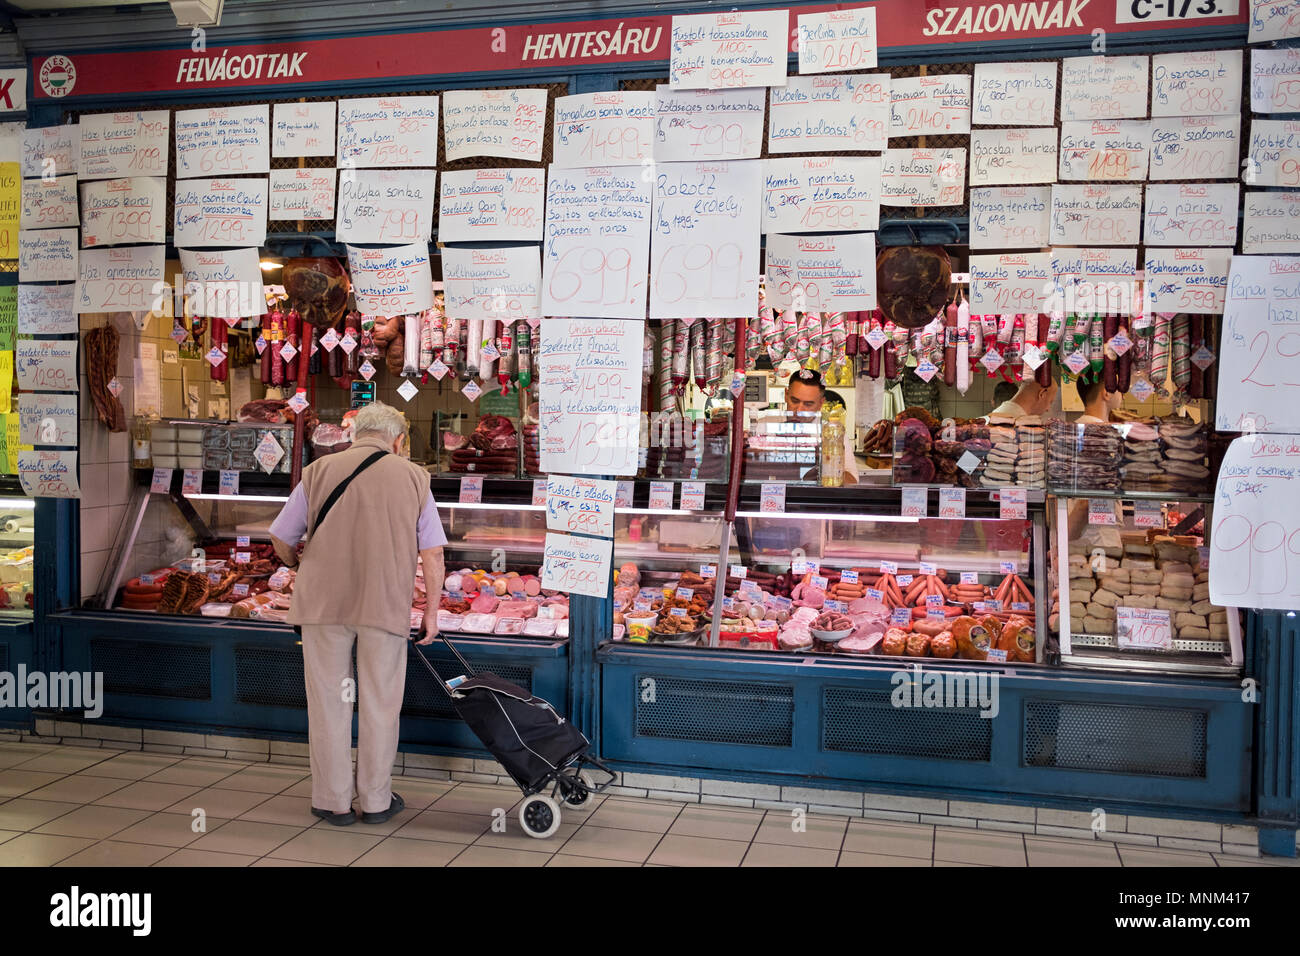 An unidentified man with a cart shops for meat at the Central Market in the Pest section of Budapest, Hungary. Stock Photo